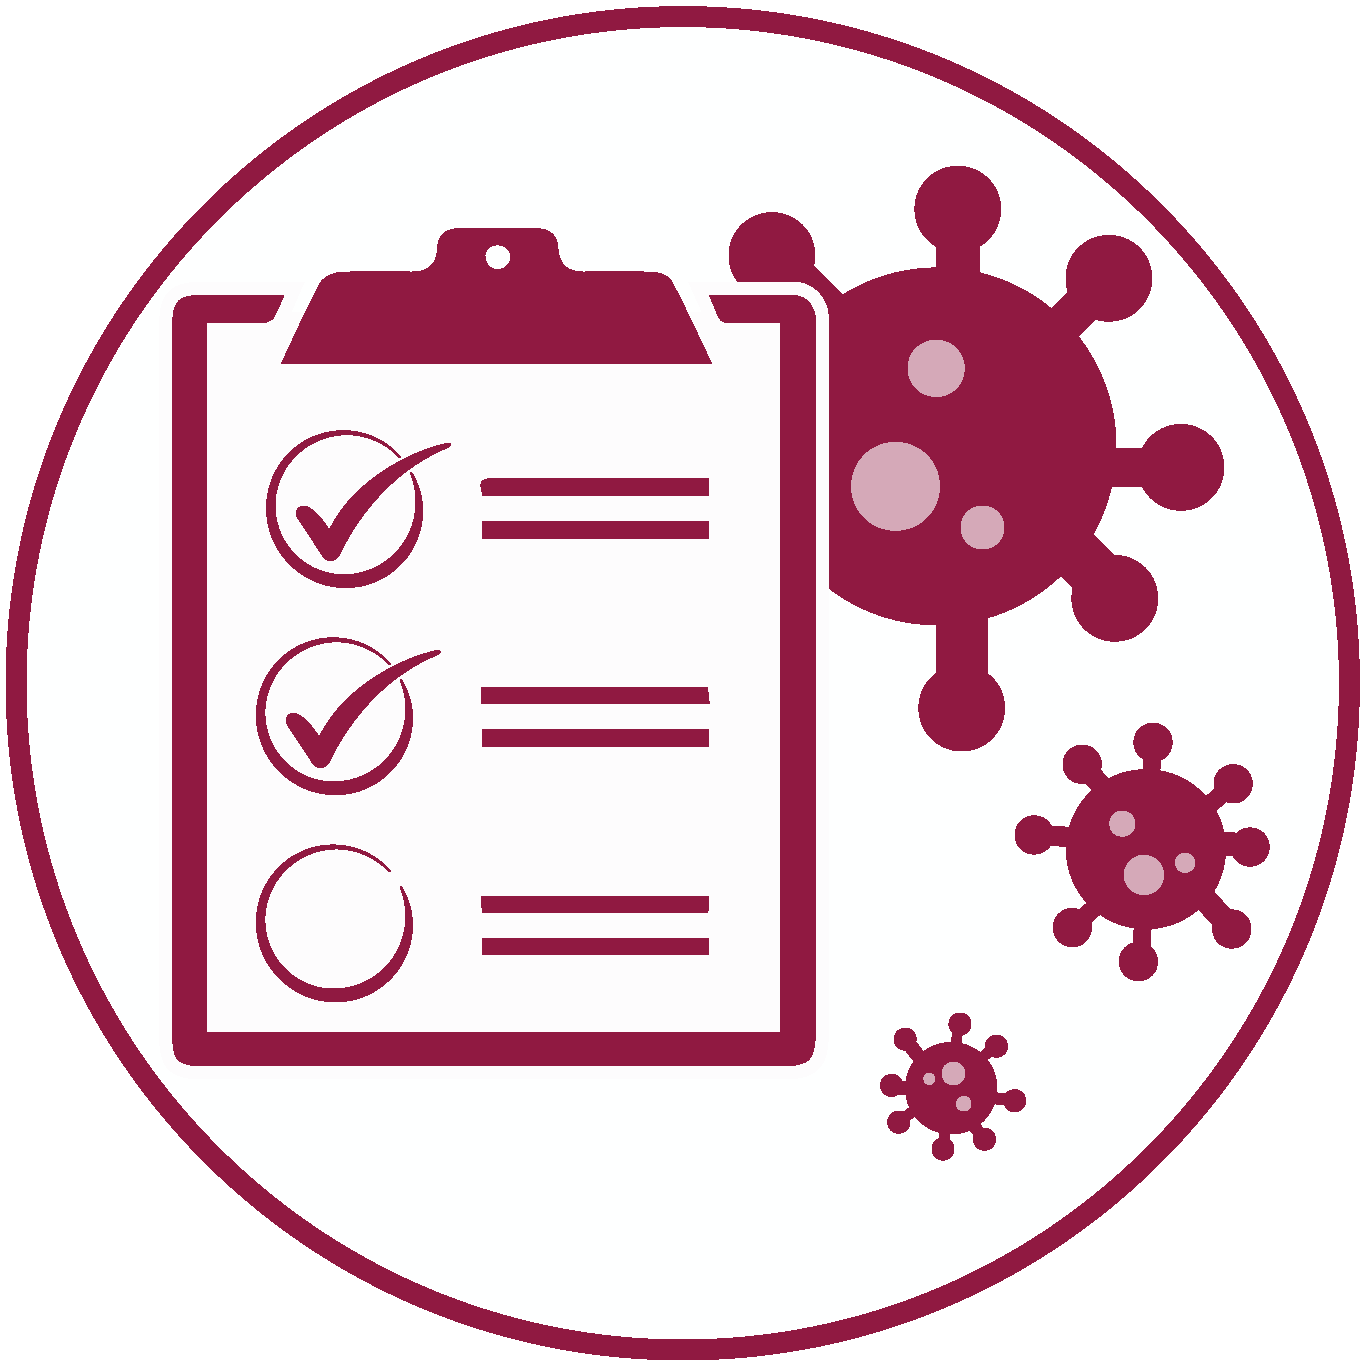 discharge planning icon